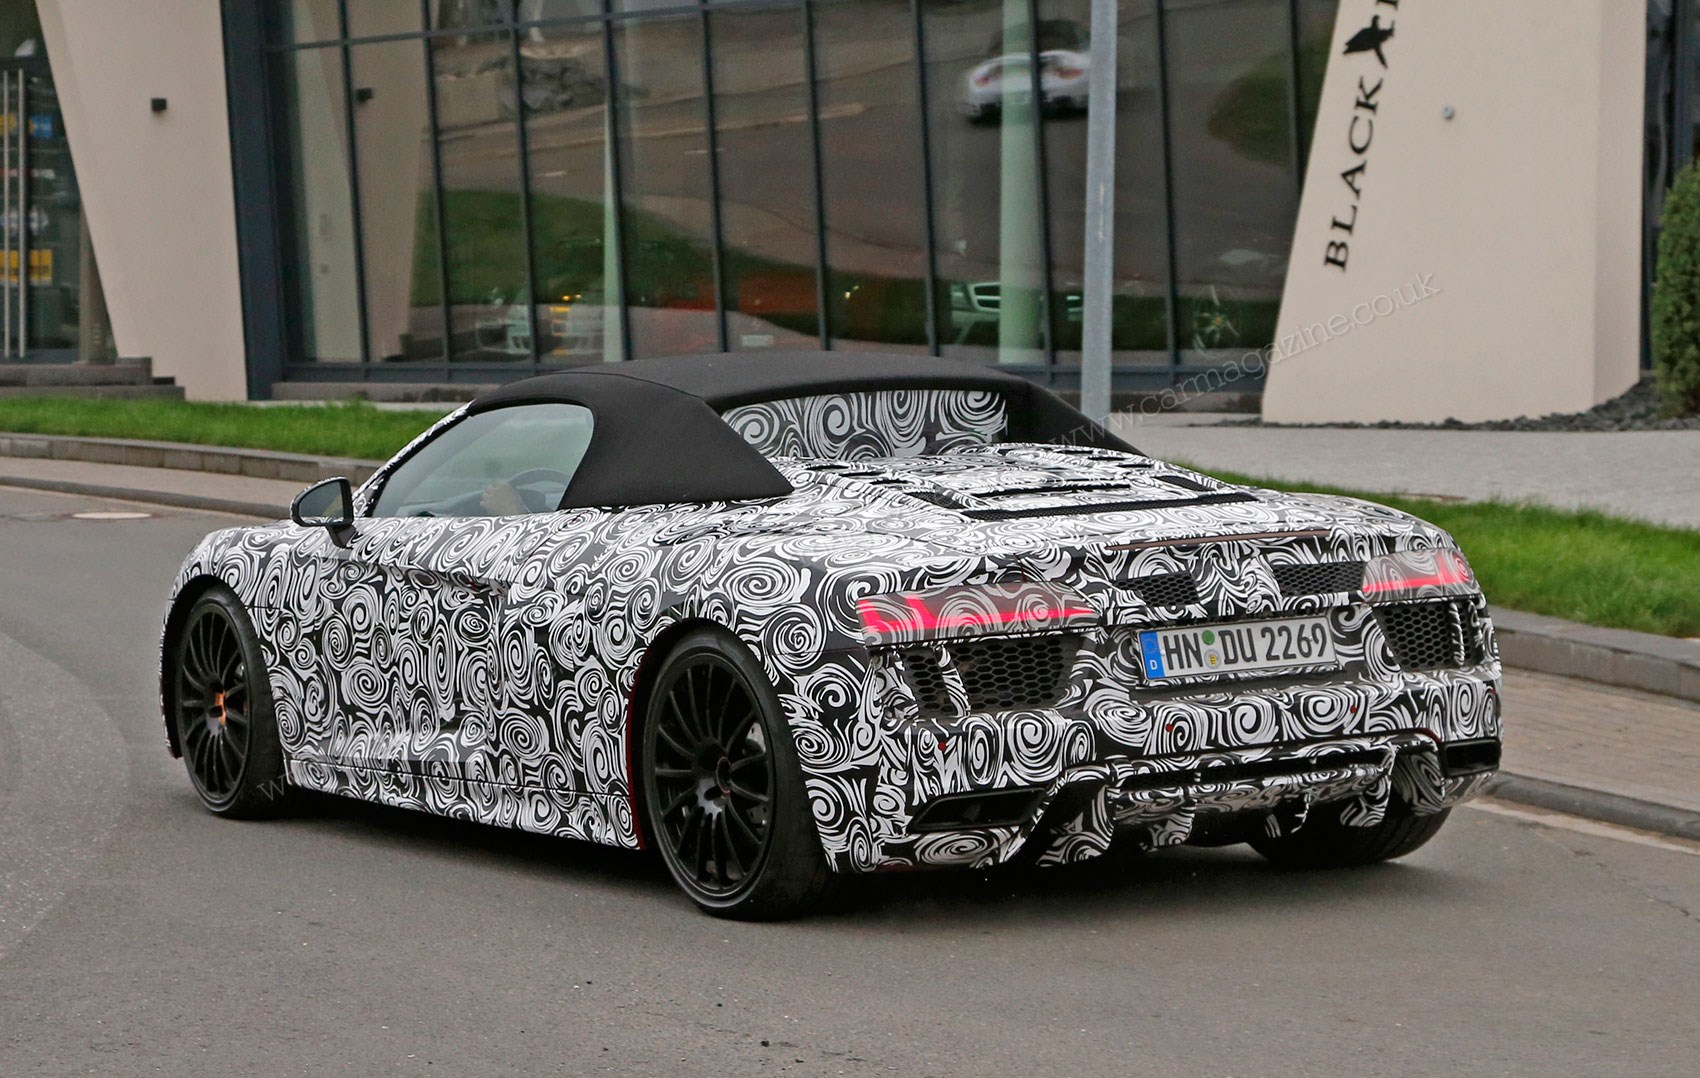 An openandshut case new Audi R8 Spyder scooped undisguised by